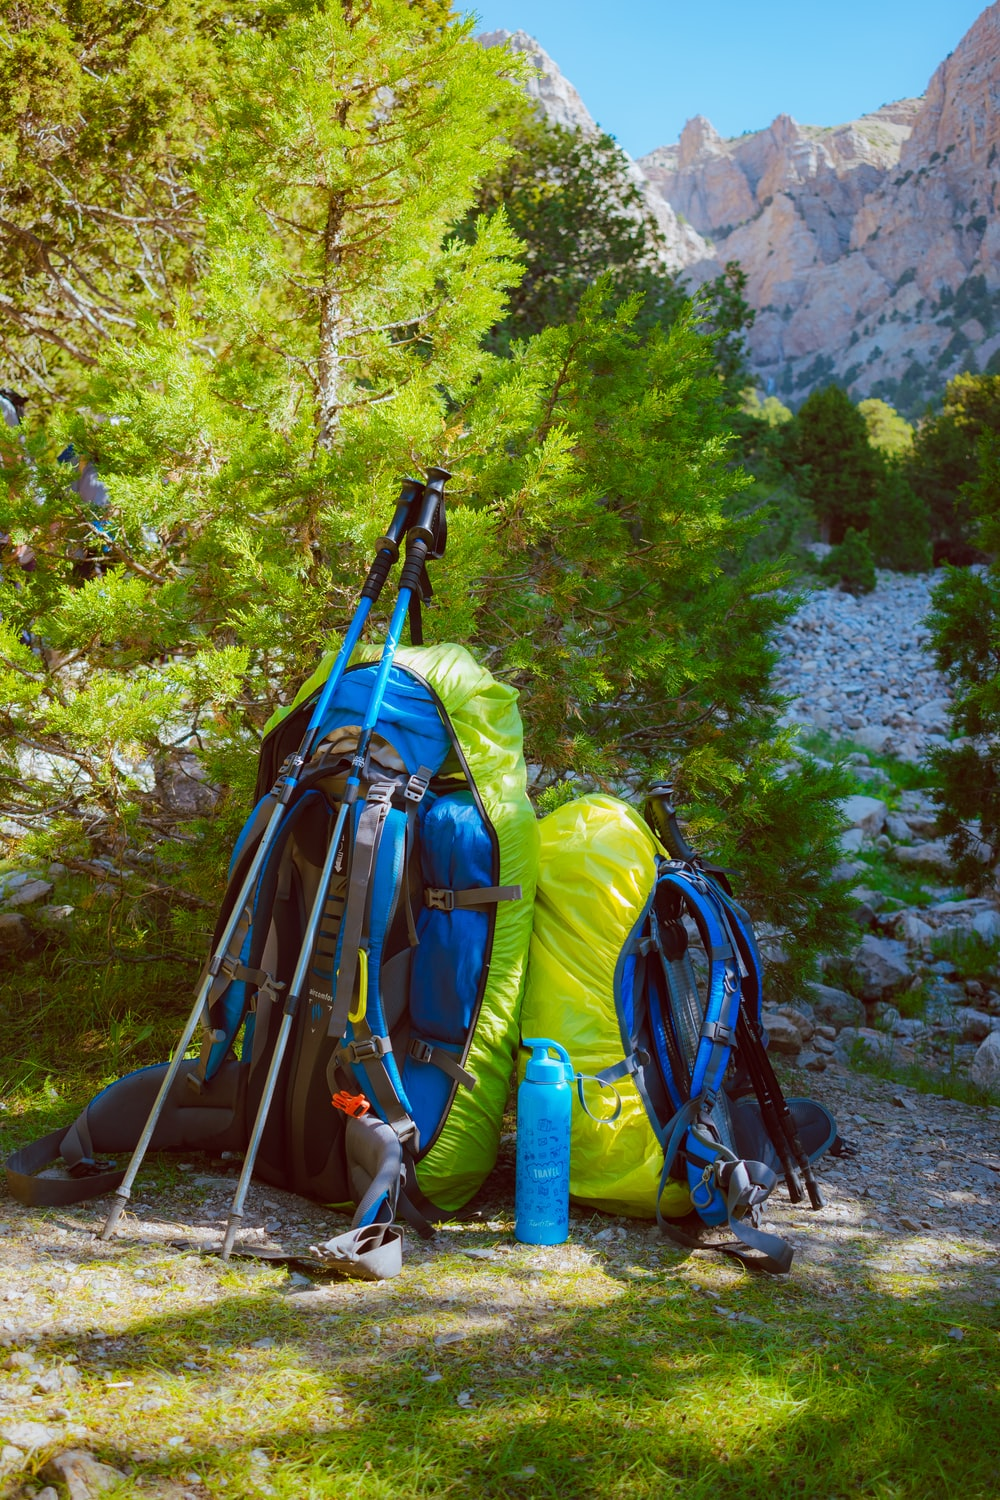 blue and black hiking backpacks on gray rocky ground